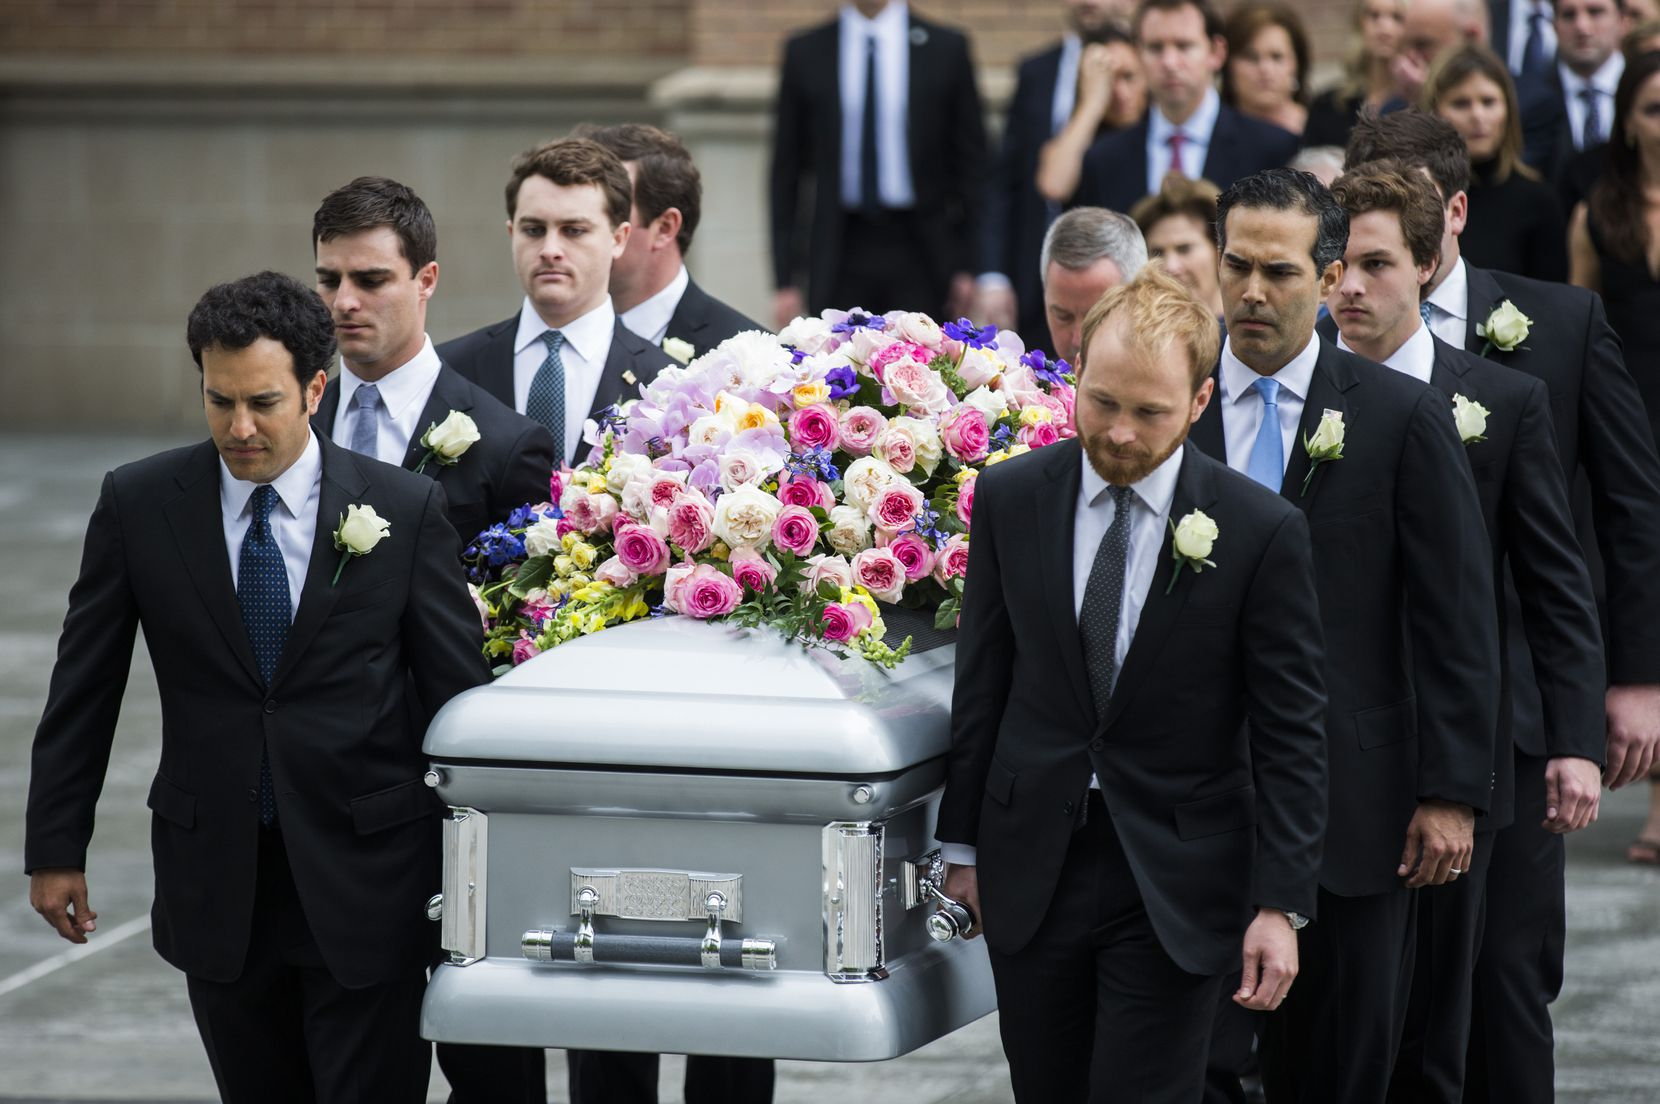 Pallbearers carry Barbara Bush's casket after her funeral at St. Martin's Episcopal Church in Houston.